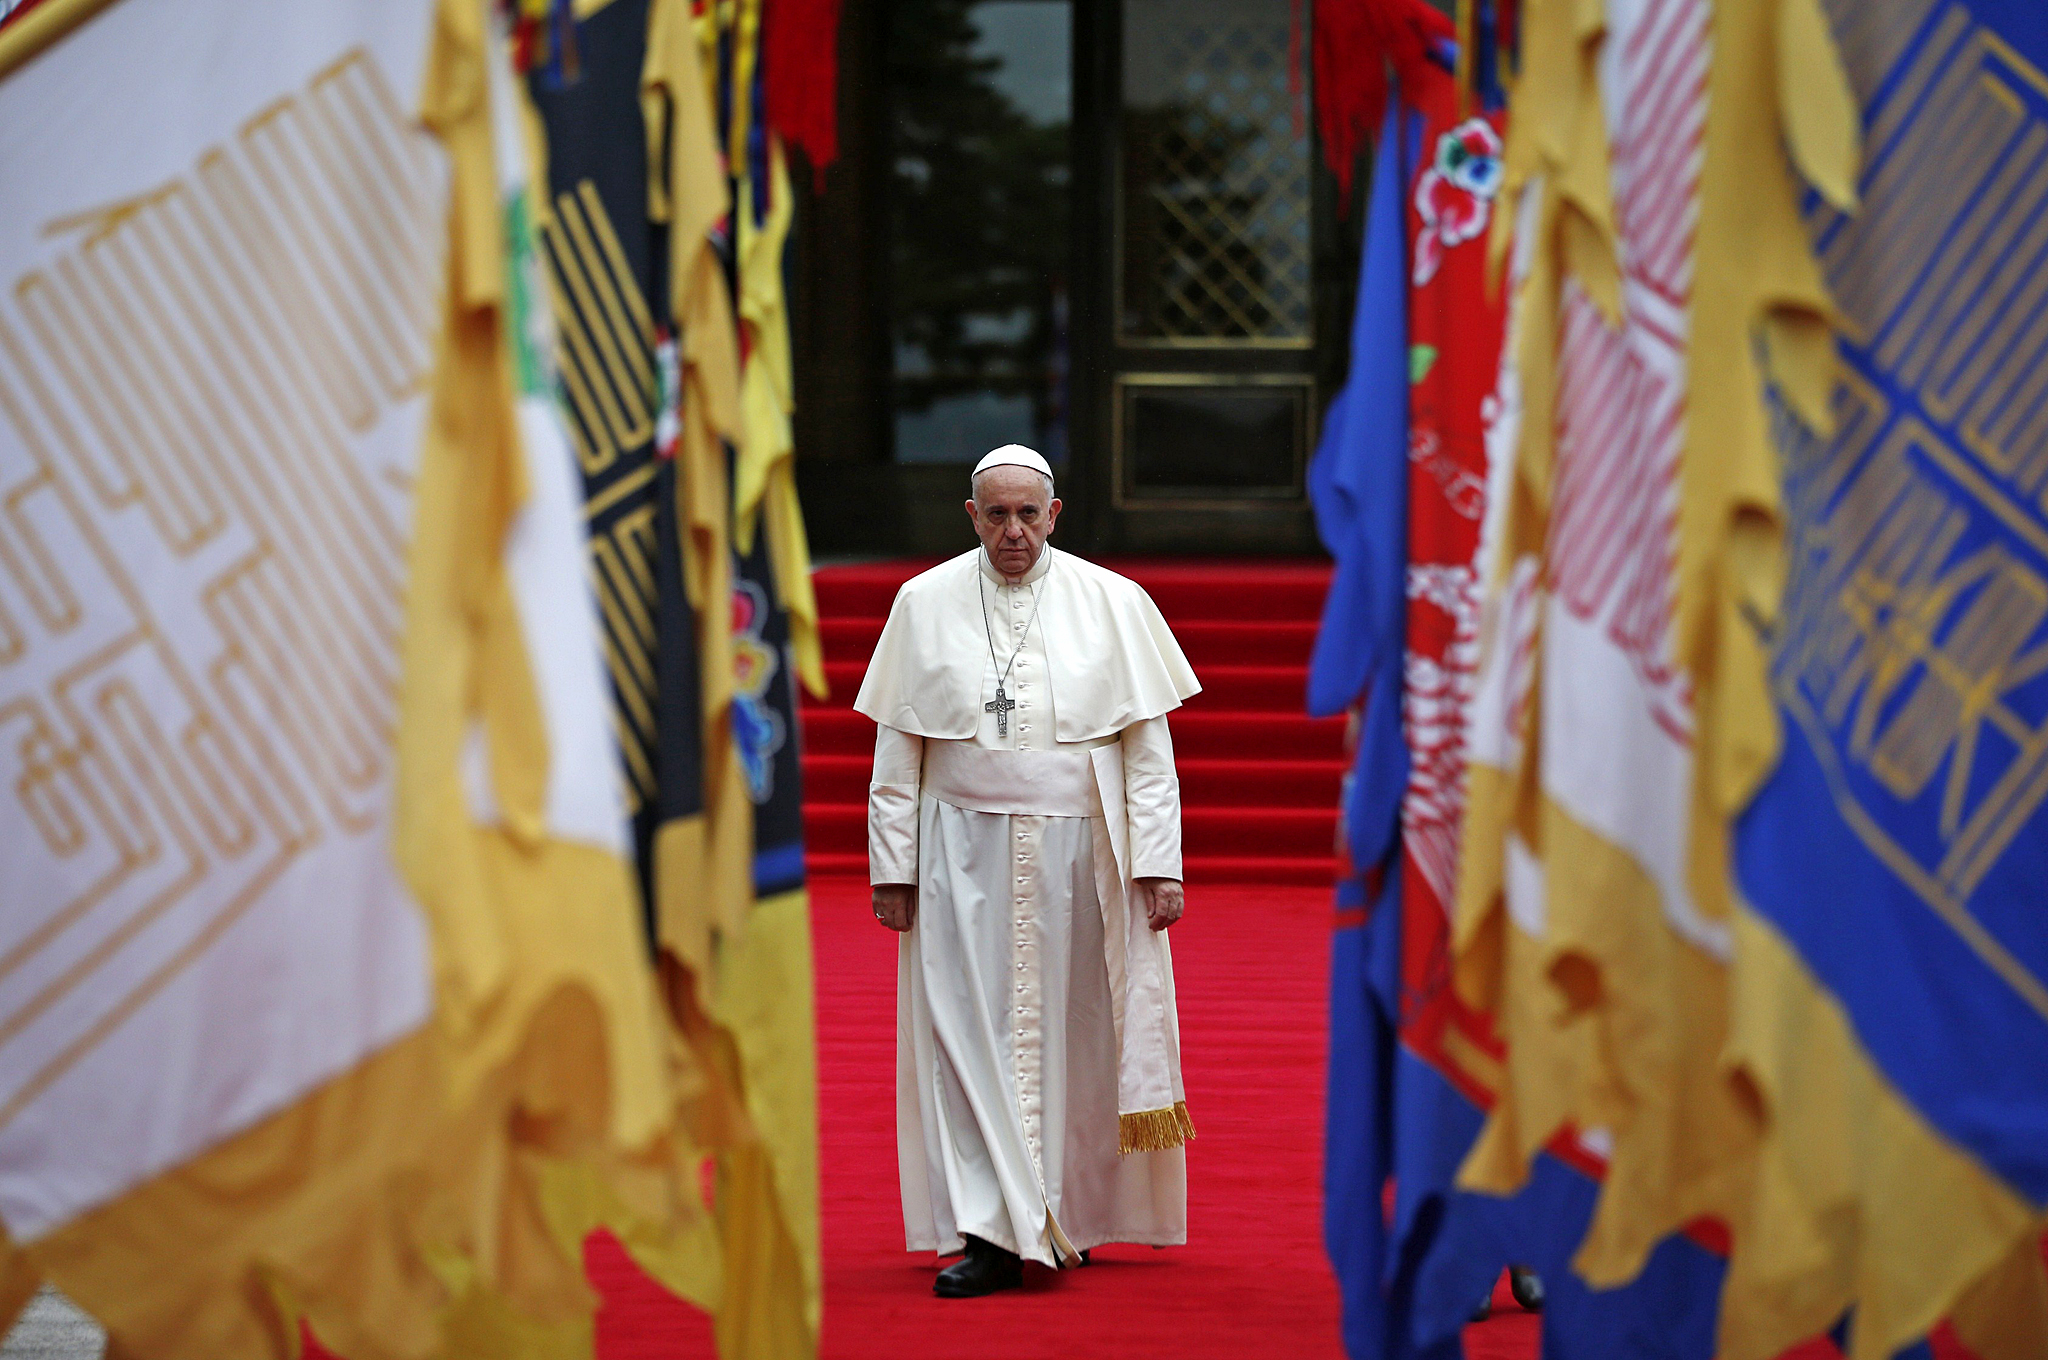 Pope Francis arrives to attend a welcomi...Pope Francis arrives to attend a welcoming ceremony at the presidential Blue House in Seoul on August 14, 2014. Pope Francis arrived in Seoul looking to fuel a new era of Catholic growth in Asia -- a mission fraught with complex political challenges but huge potential rewards. AFP PHOTO / POOL / Kim Hong-JiKim Hong-Ji/AFP/Getty Images